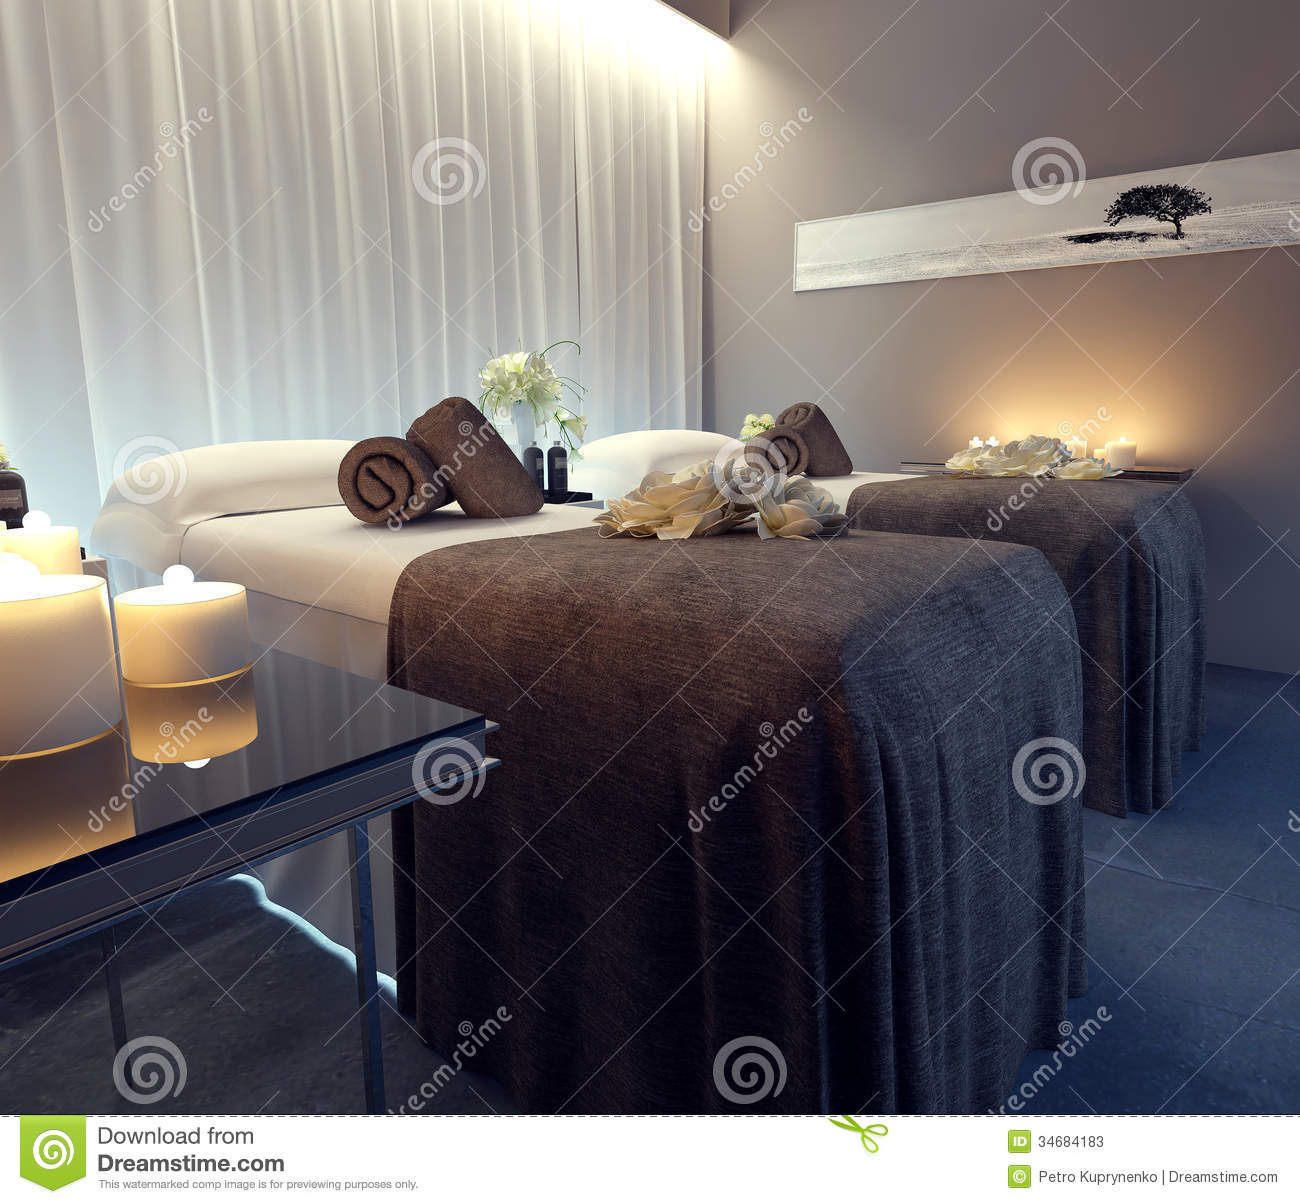 Interior Spa Salon Stock Photos - Image: 34684183